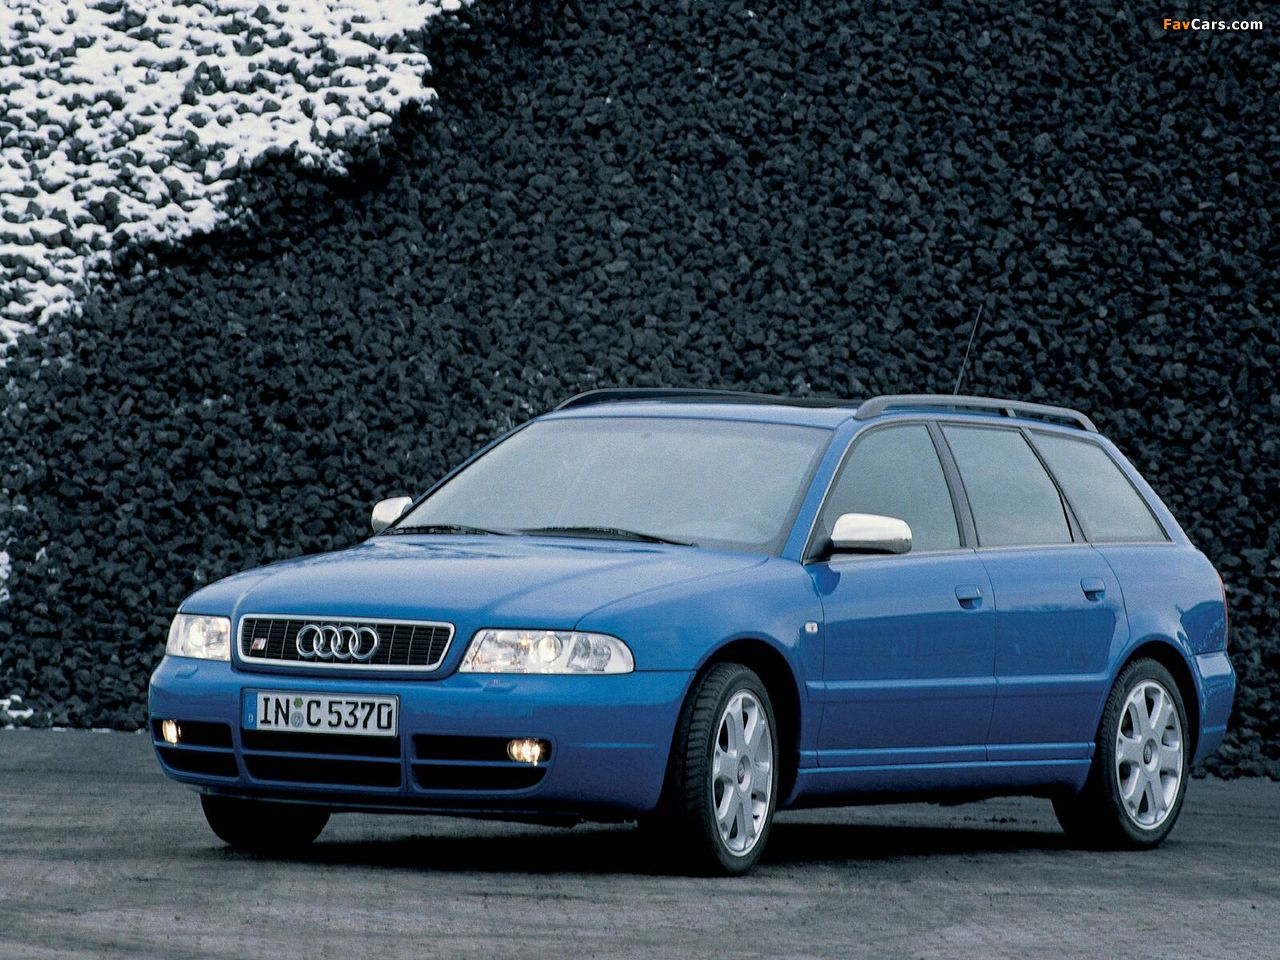 Wallpapers Of Audi S4 Avant B5 8d 1997 2002 1280x960